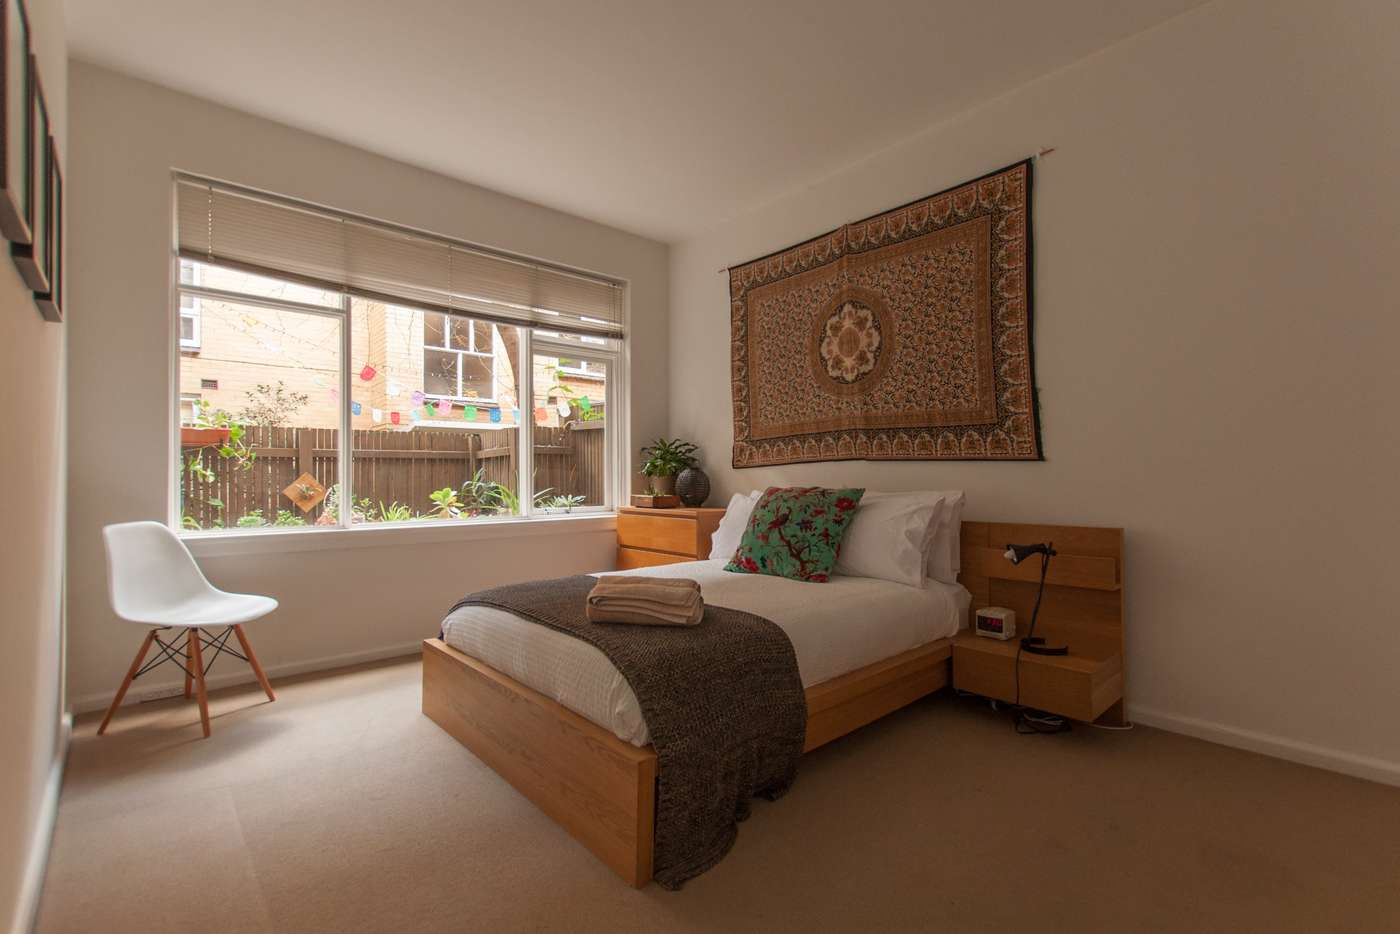 Sixth view of Homely apartment listing, 8/10 Williams Road, Windsor VIC 3181